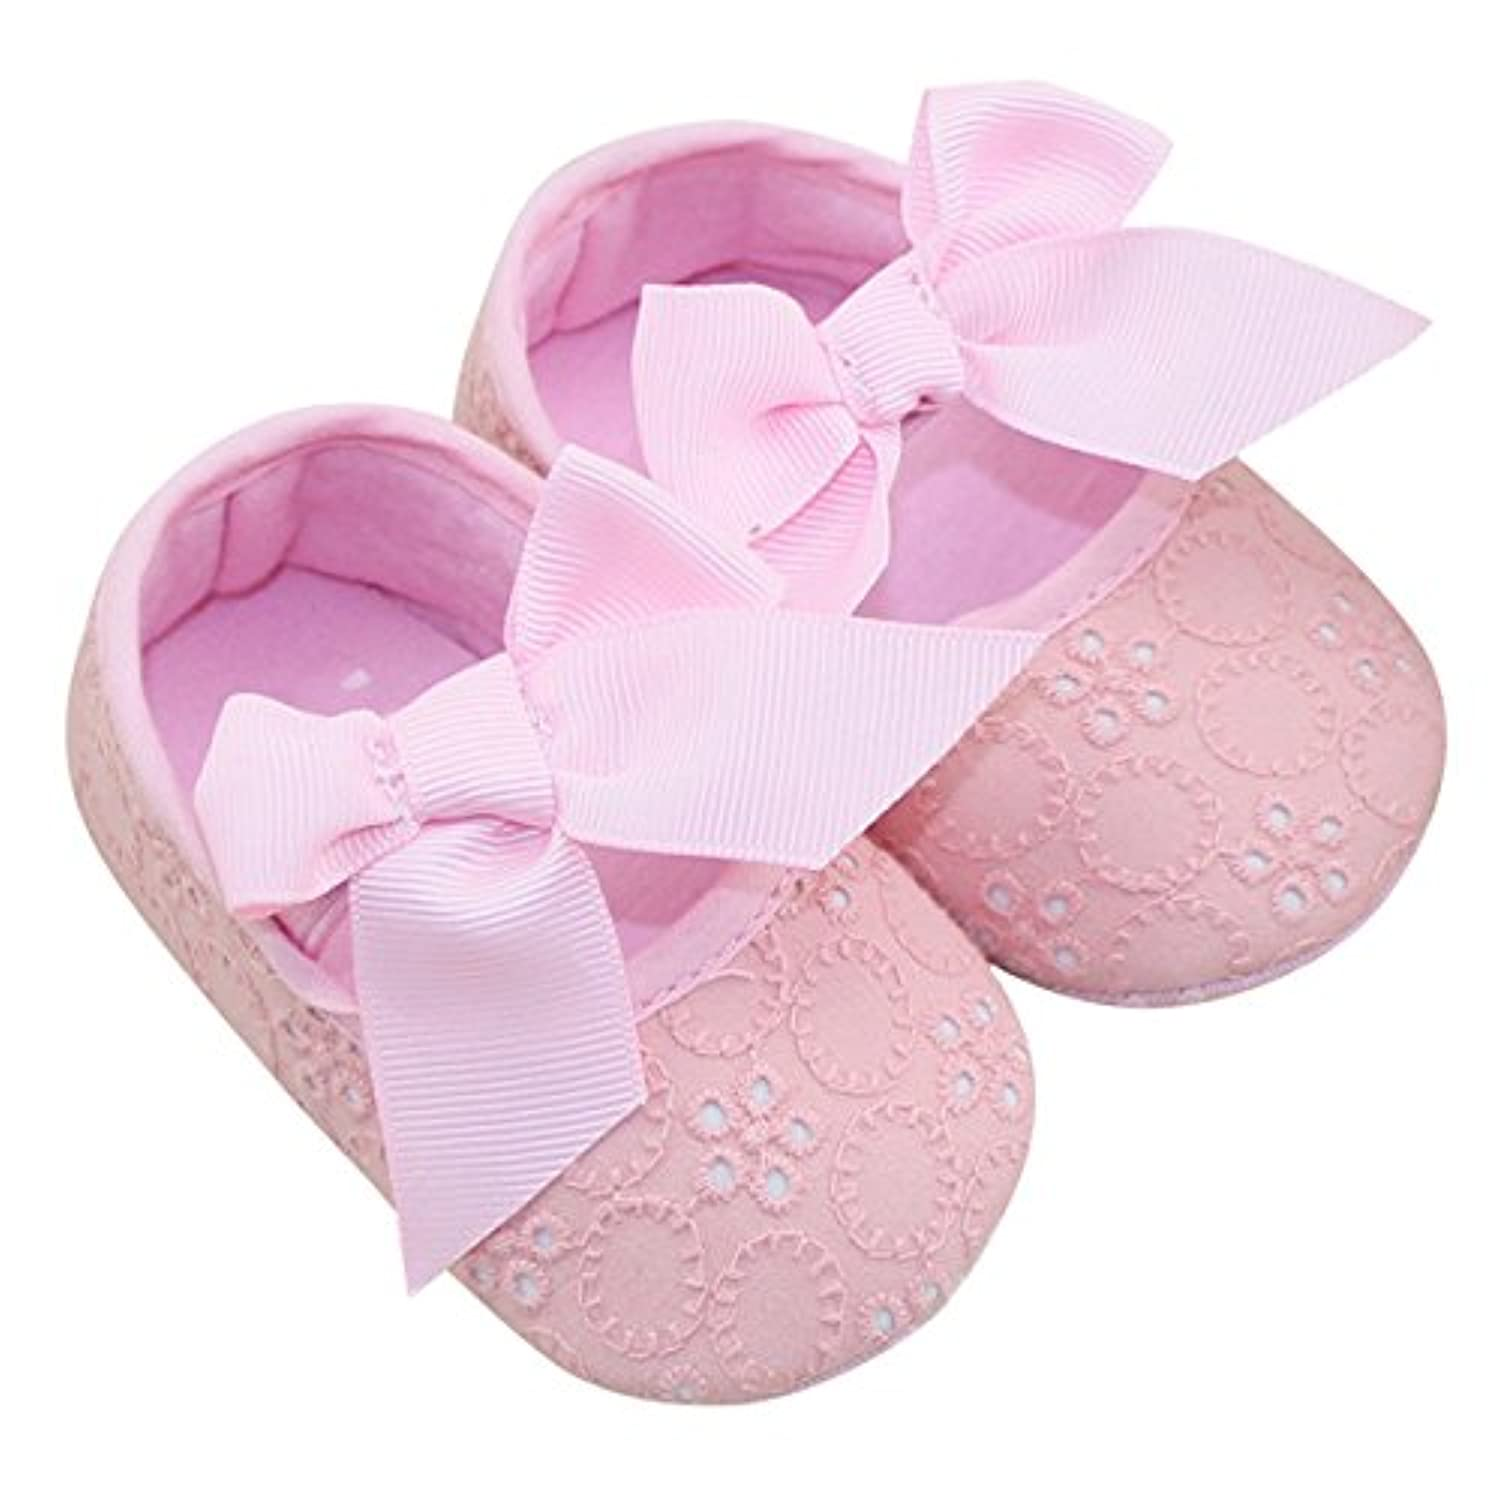 Aivtalk Toddler Baby Girls Princess Bowknot Ribbon Soft Sole Mary Jane Moccasins Prewalker Crib Shoes - Pink 13cm...